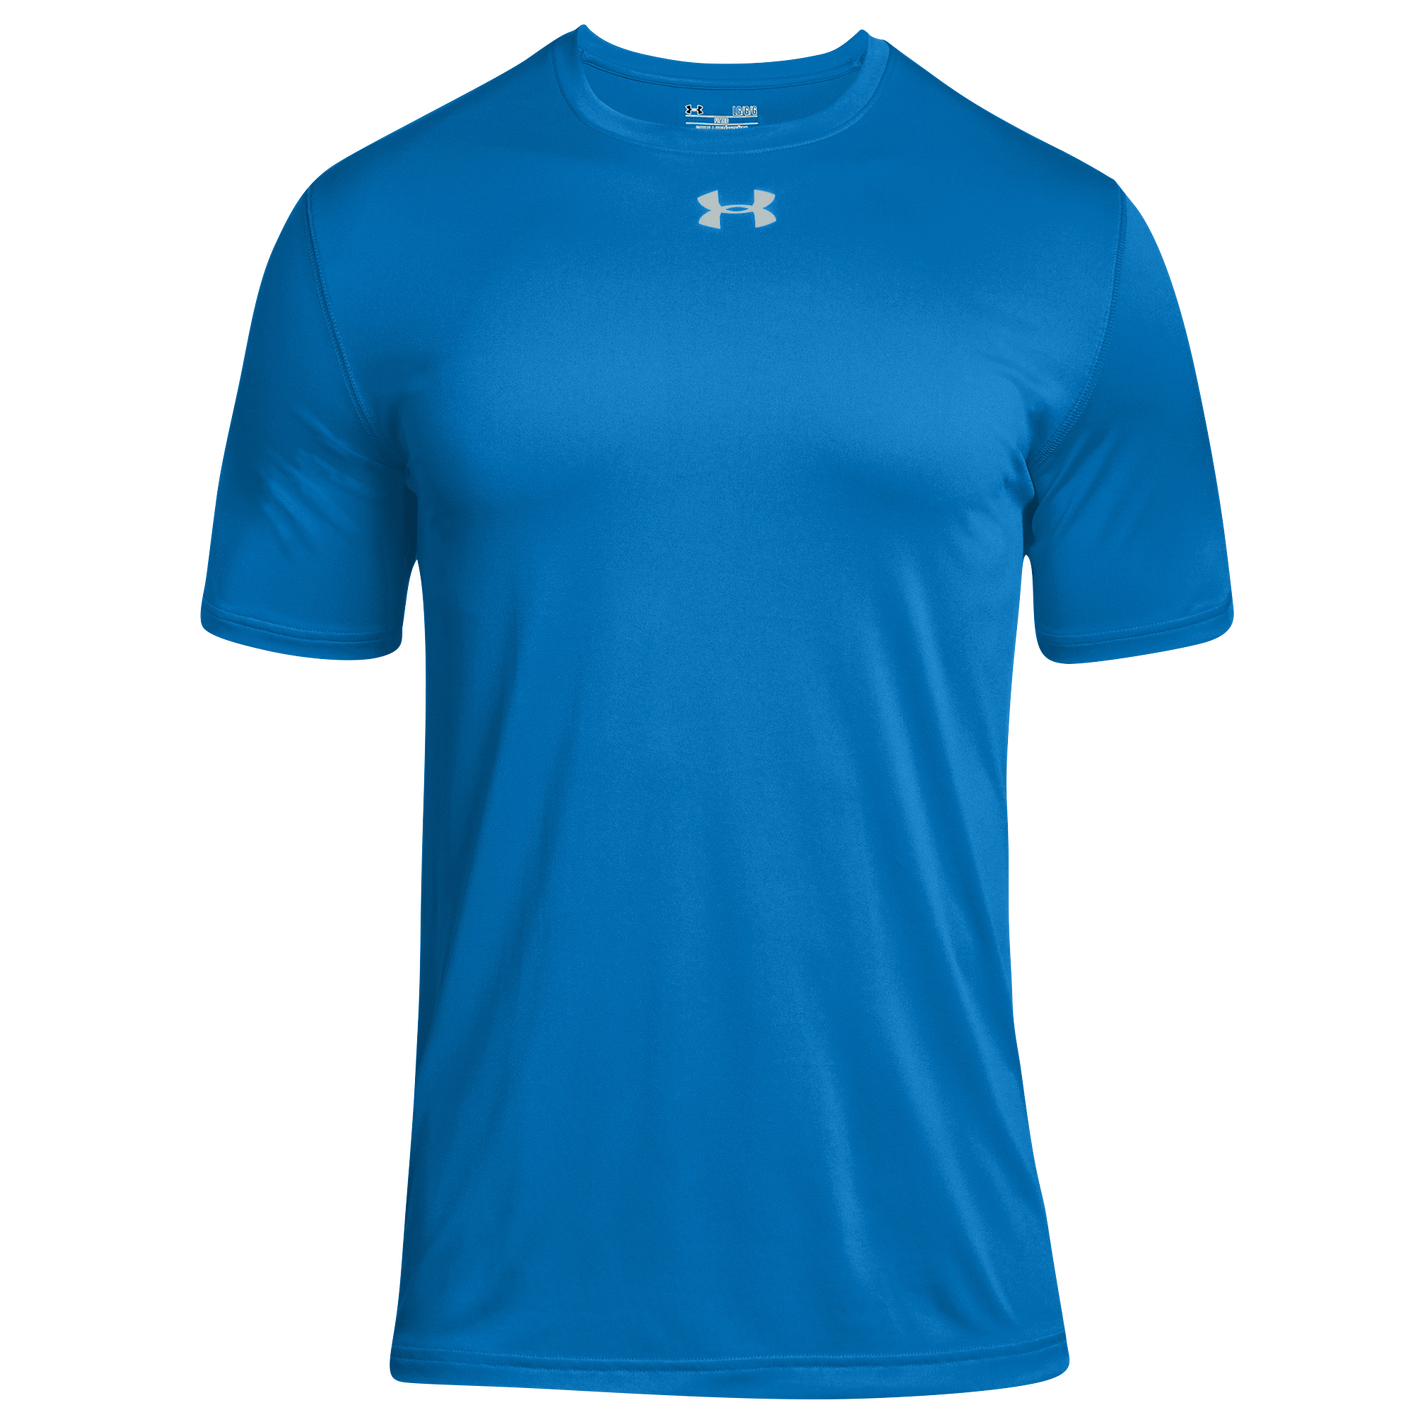 a9907b48 Under Armour Team Locker 2.0 S S T Shirt Mens - Nils Stucki ...